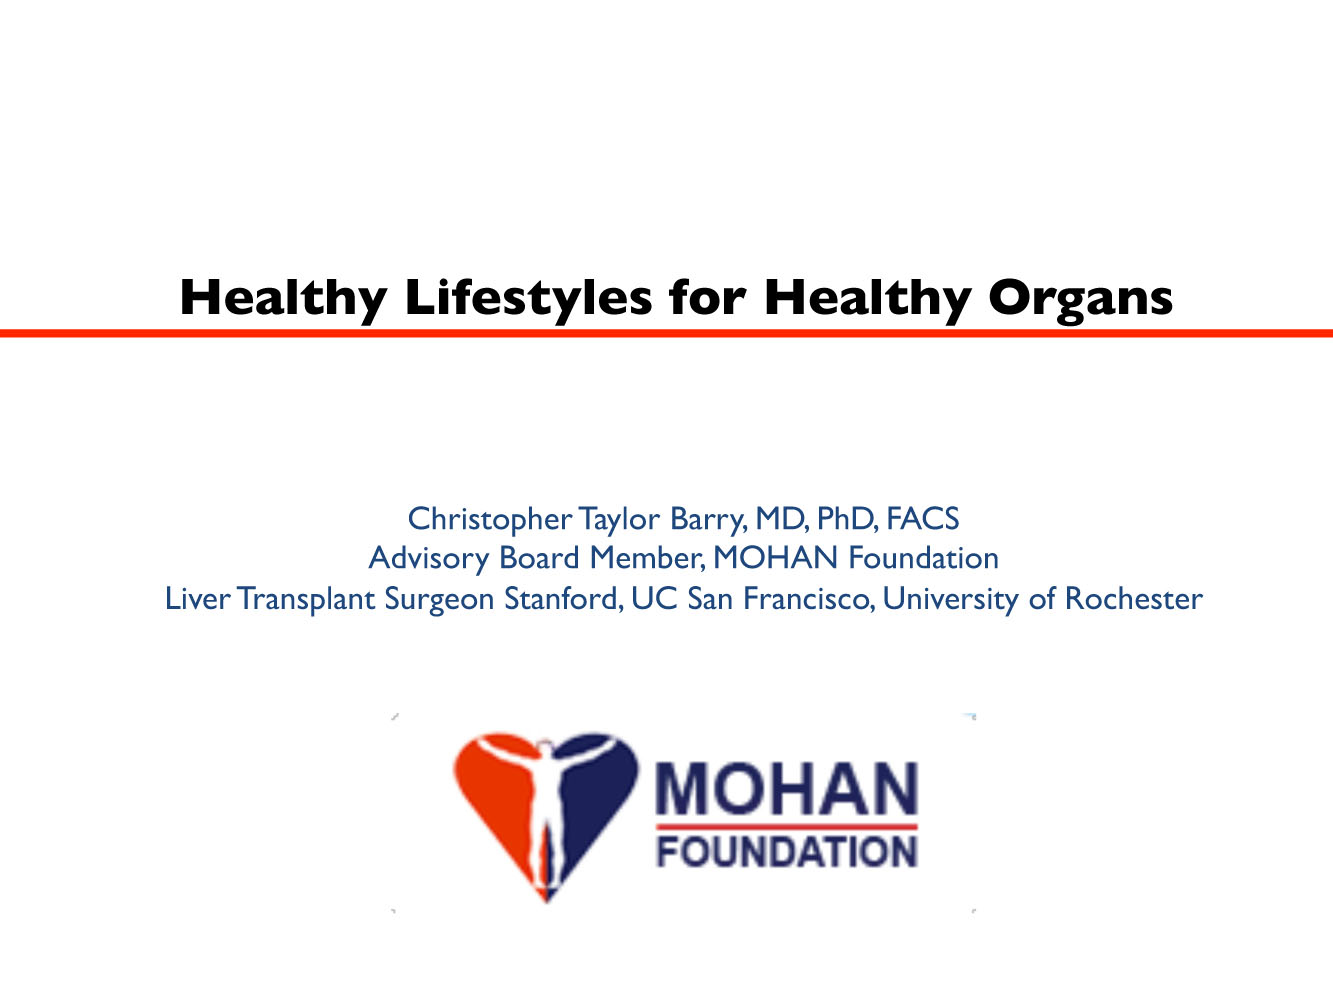 healthy lifestyles for healthy organs christopher taylor barry i am healthy lifestyles for healthy organs dr chris barry madurai rotary club organ donation